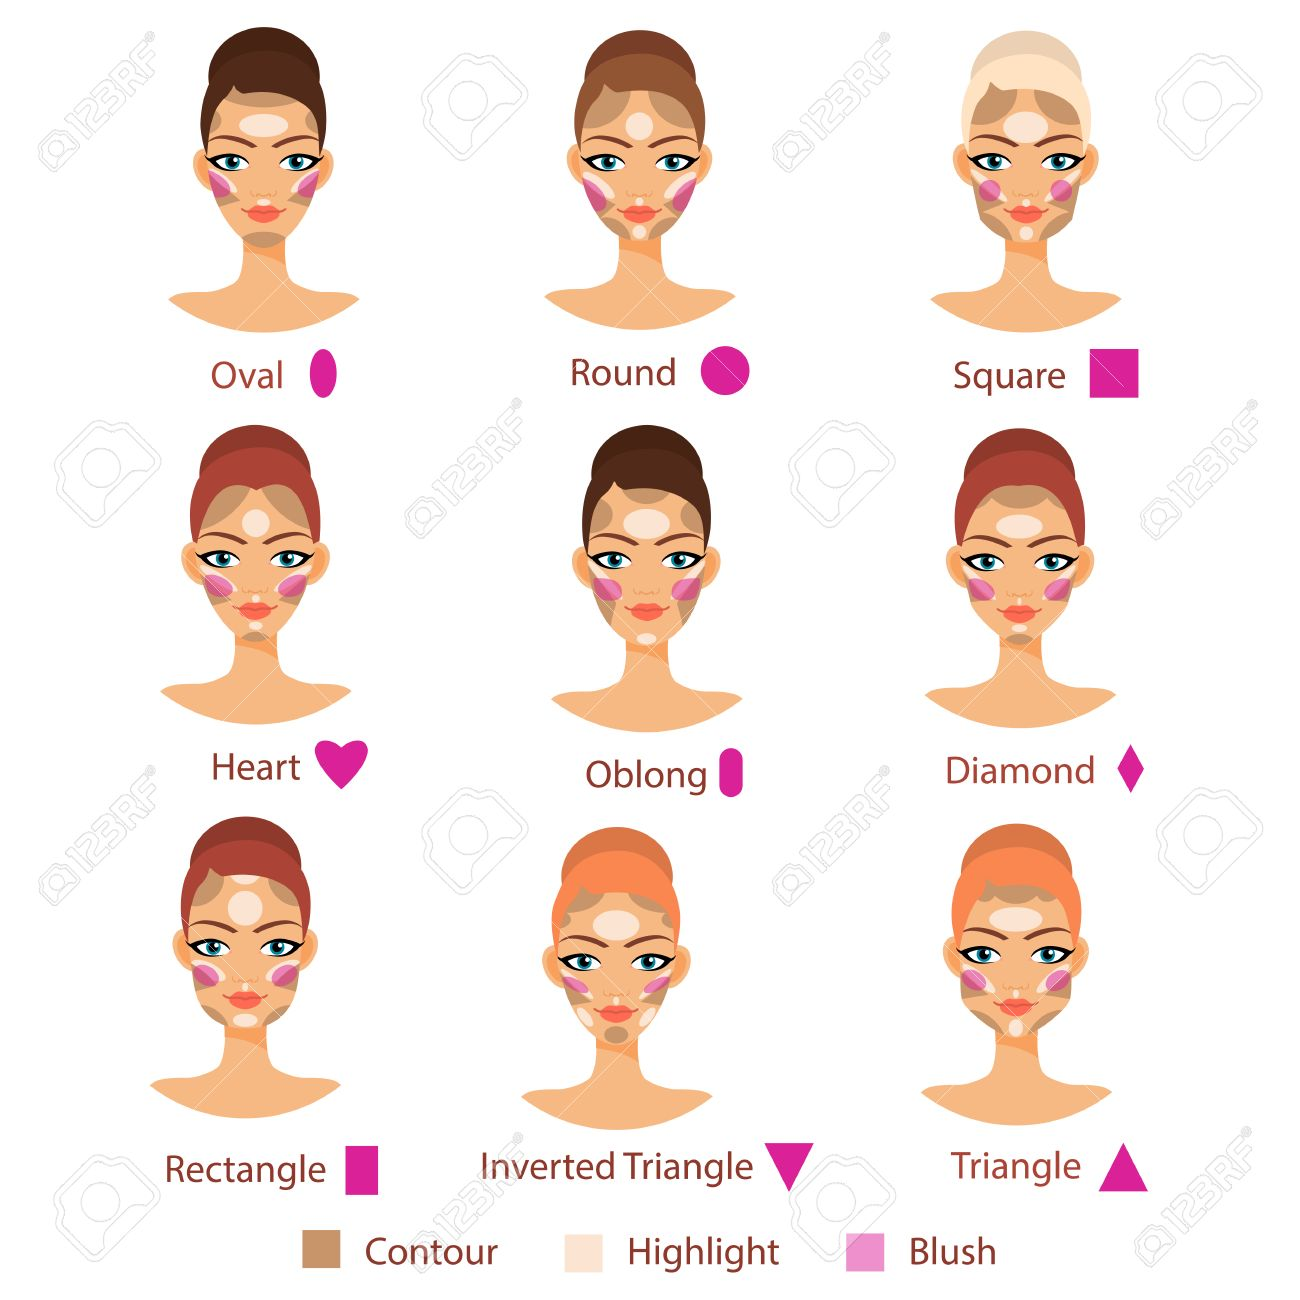 Highlight, contour and blush for different female face shape. Basic of contouring. Highlighting and contouring. Face types for beauty. - 59066176